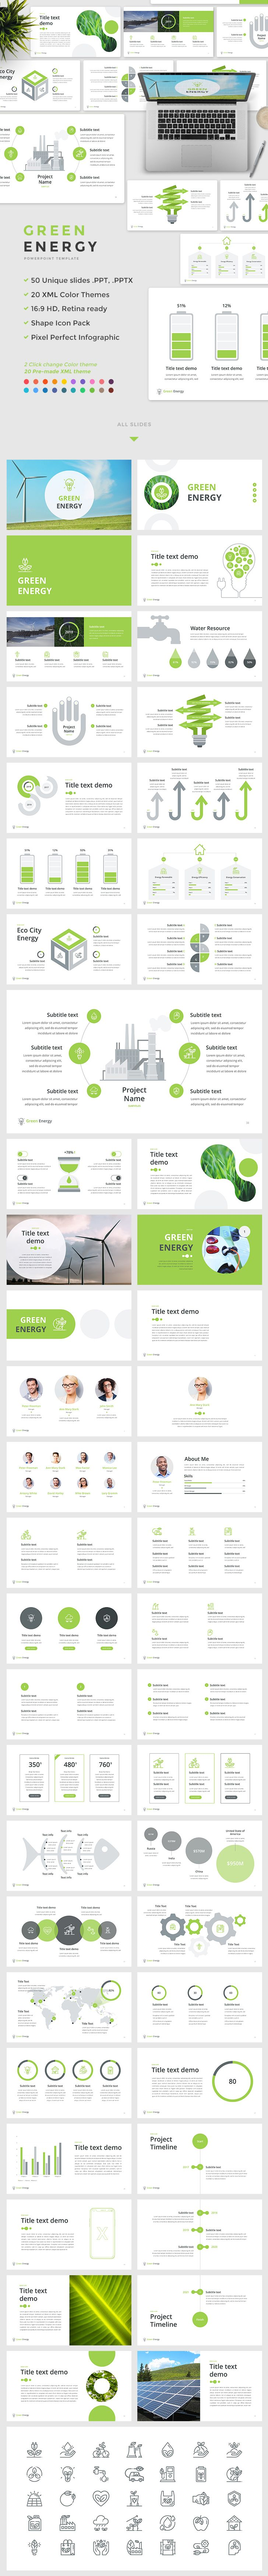 57 best powerpoint template images on pinterest ui ux animation green energy powerpoint template 50 unique slides ppt pptx 20 pre toneelgroepblik